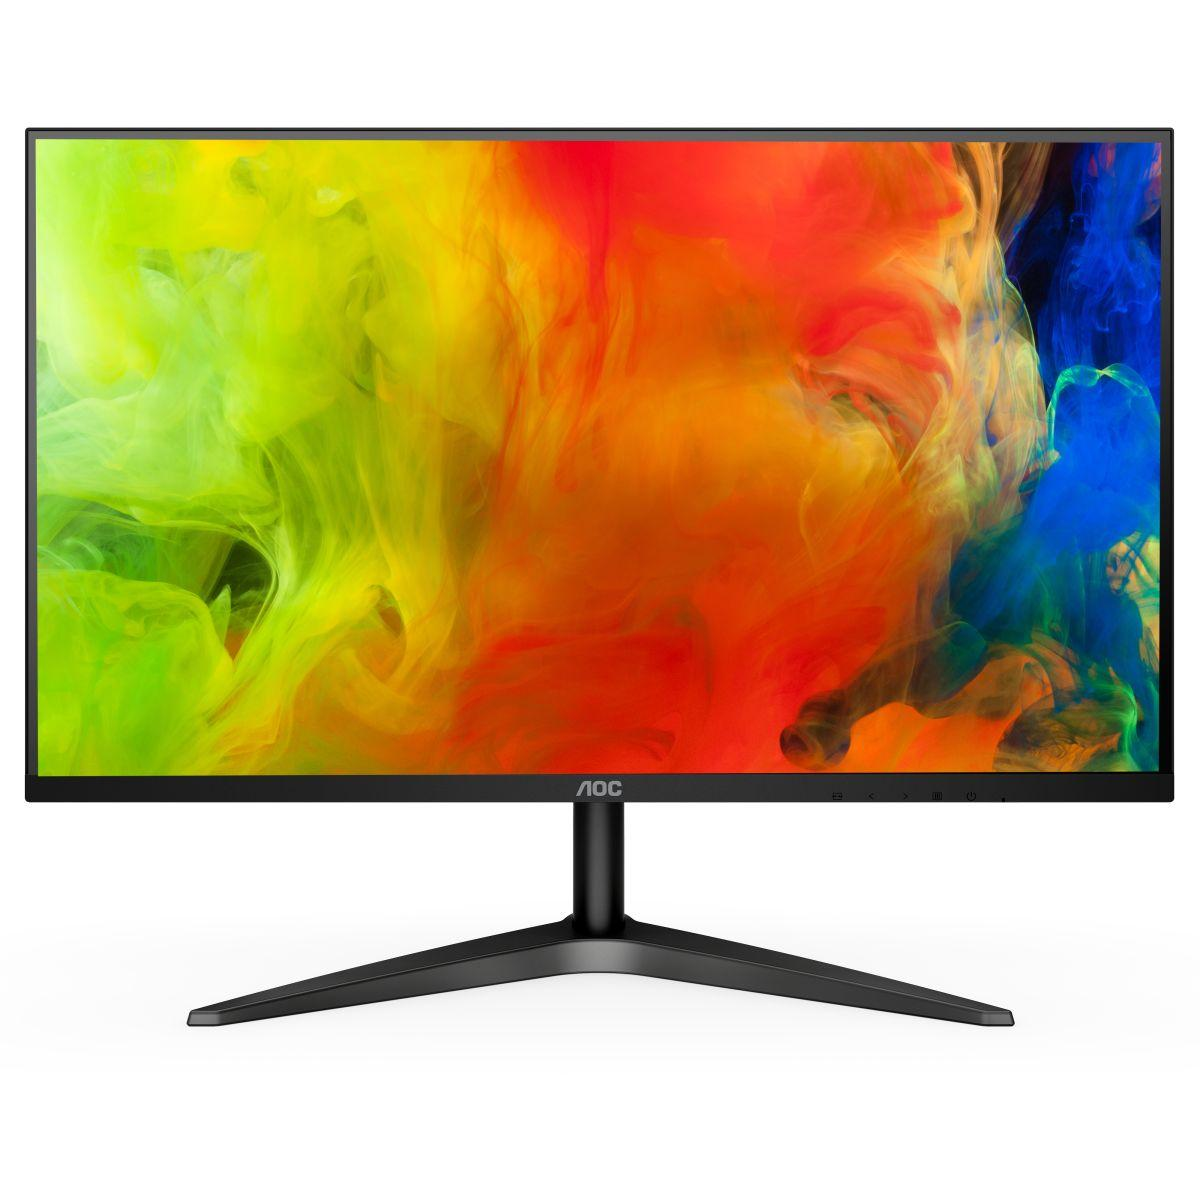 AOC 24B1XH Flat Office Monitor 23.8 Inch IPS Panel 178 ° Super Wide Viewing Angle LED Backlight Technology Multi-Interface Display From XIAOMO YOUPIN